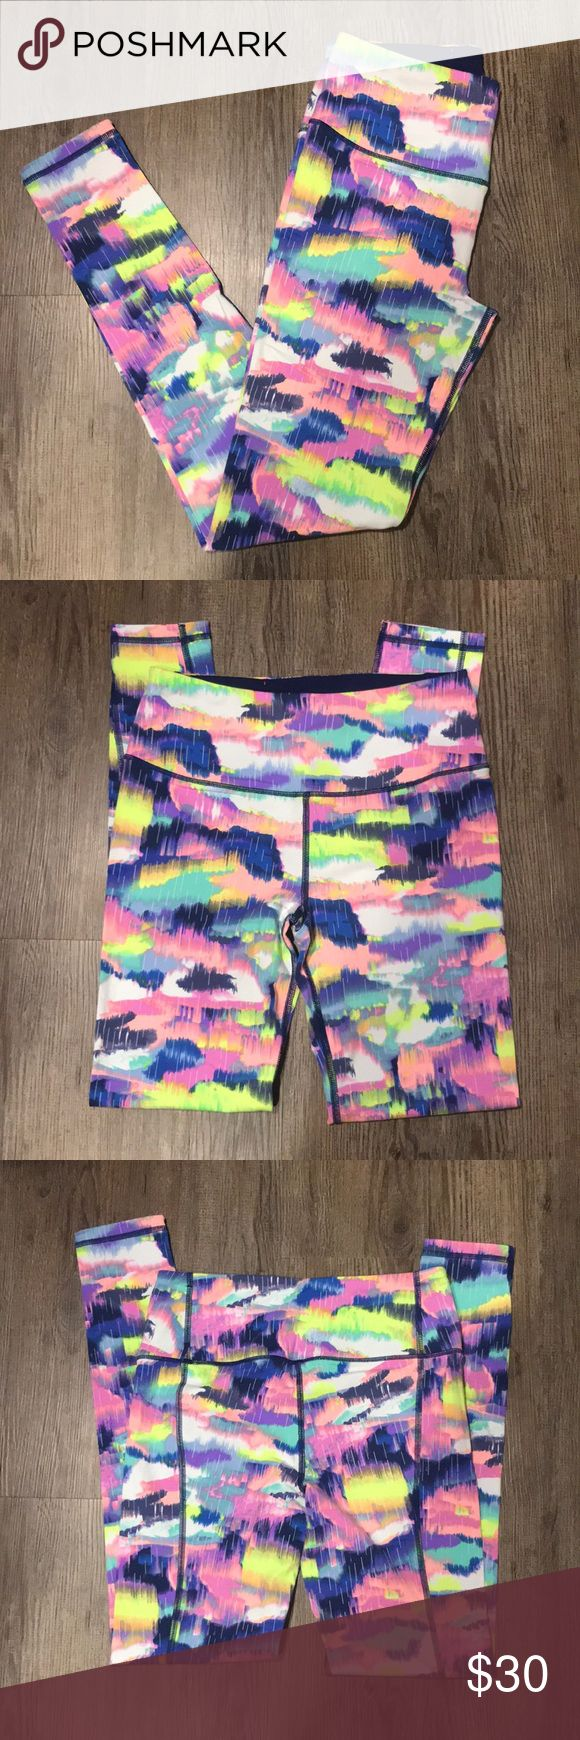 Victoria Secret Sport Knockout Tight Like new! Worn once or twice. Super cute multi-colored leggings. Victoria's Secret Pants Leggings